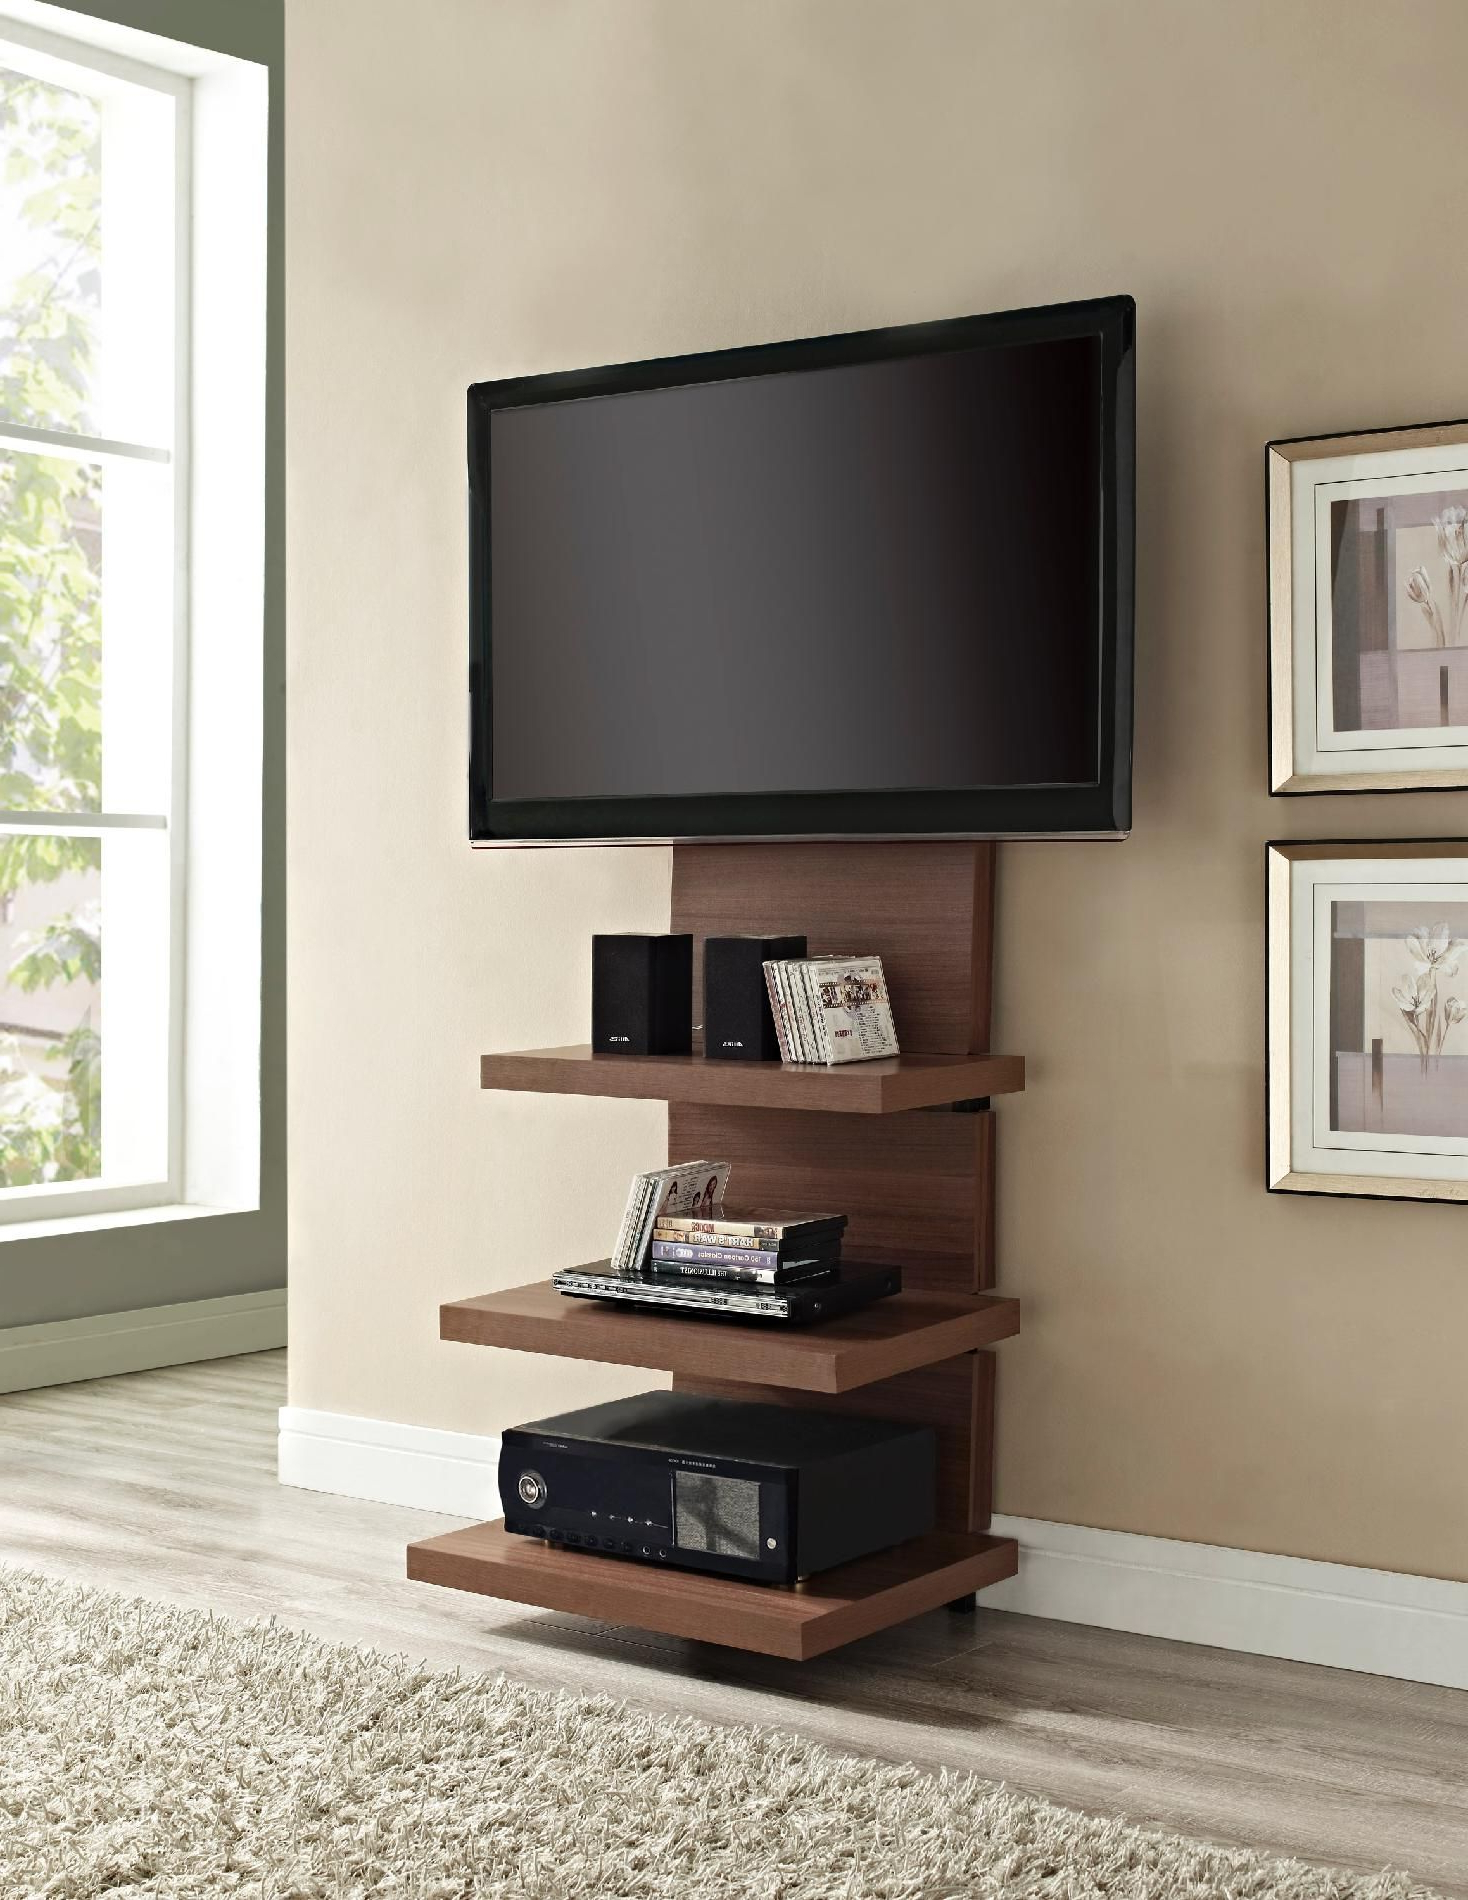 Most Recent Ultra Modern Tv Stands Within 18 Chic And Modern Tv Wall Mount Ideas For Living Room (View 7 of 20)